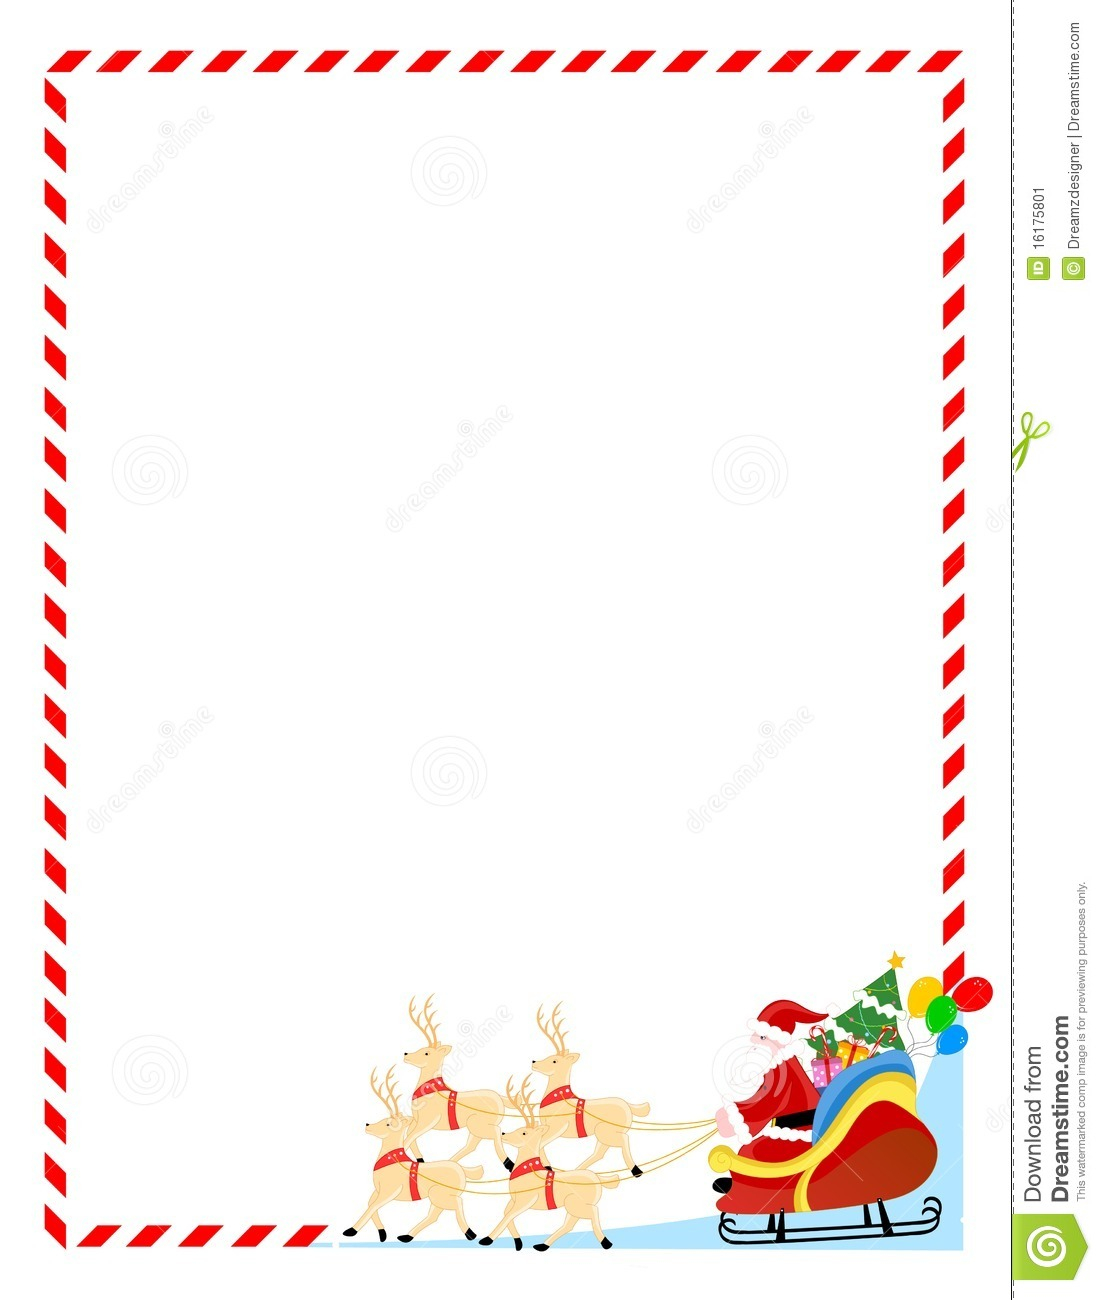 Christmas Letter Background Template - Santa Letter Borders Acurnamedia